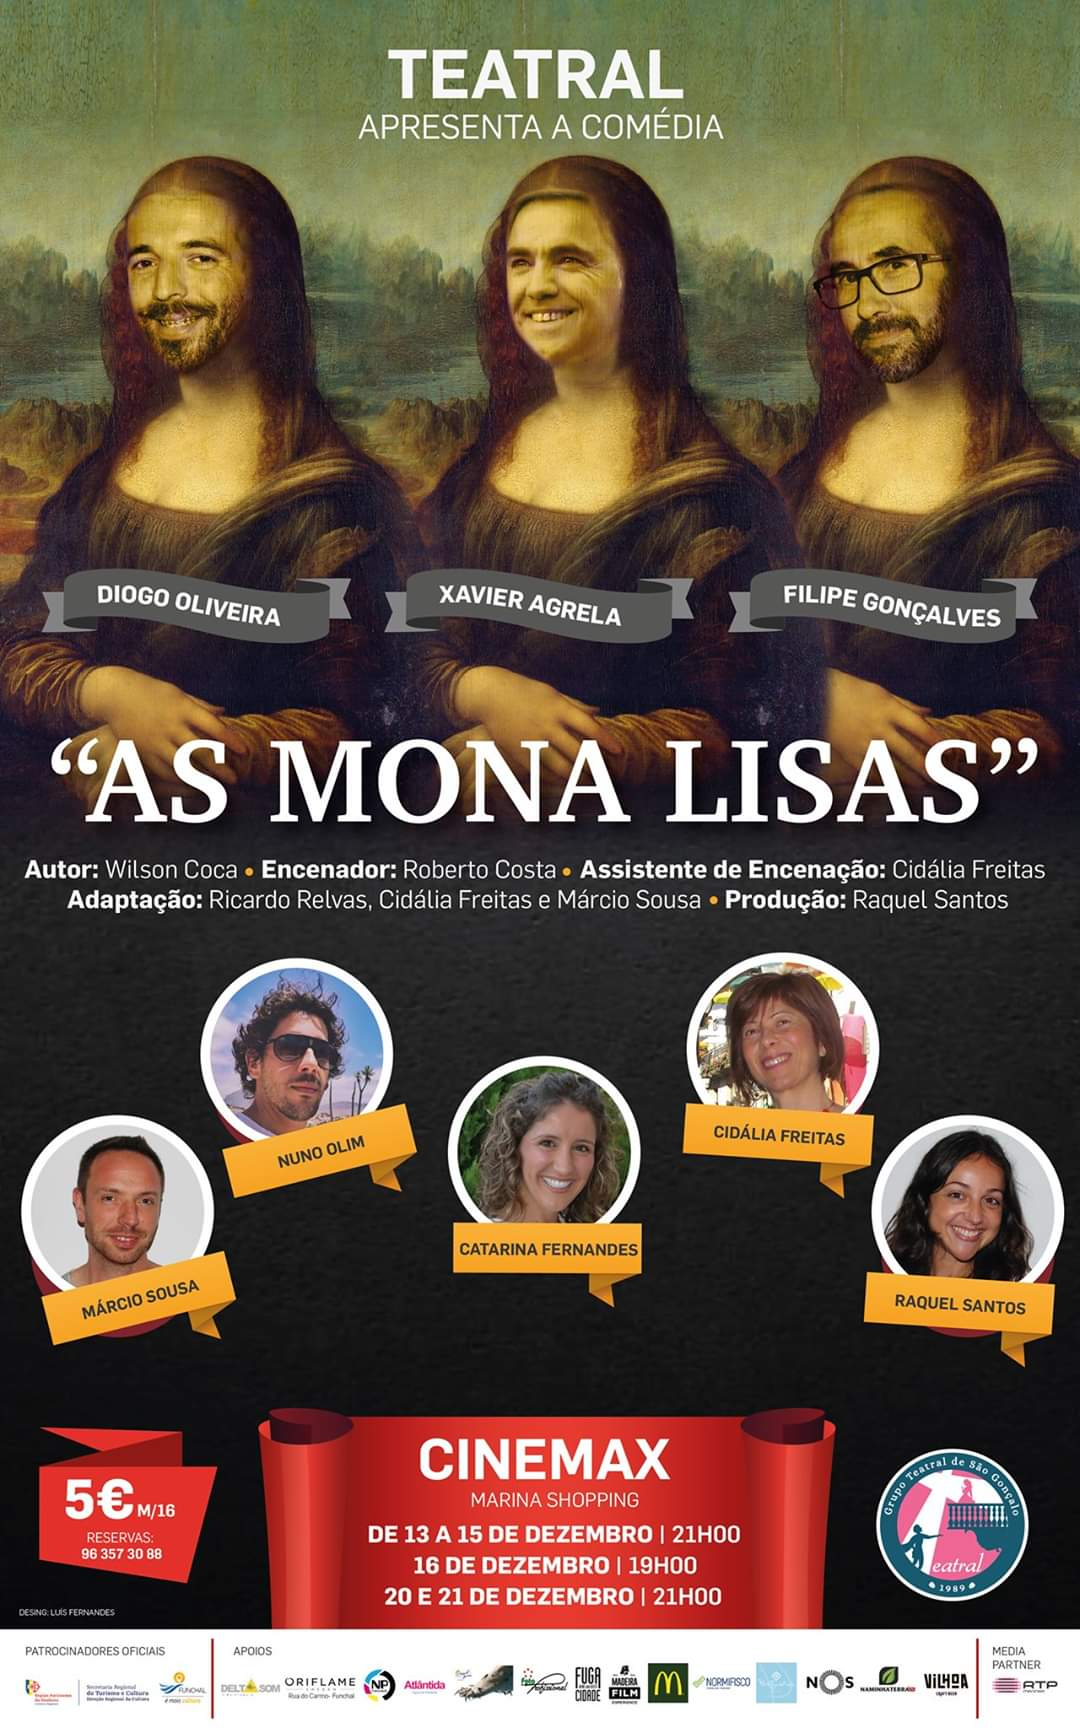 AS MONA LISAS - Recordar a Peça no Dia Mundial do Teatro